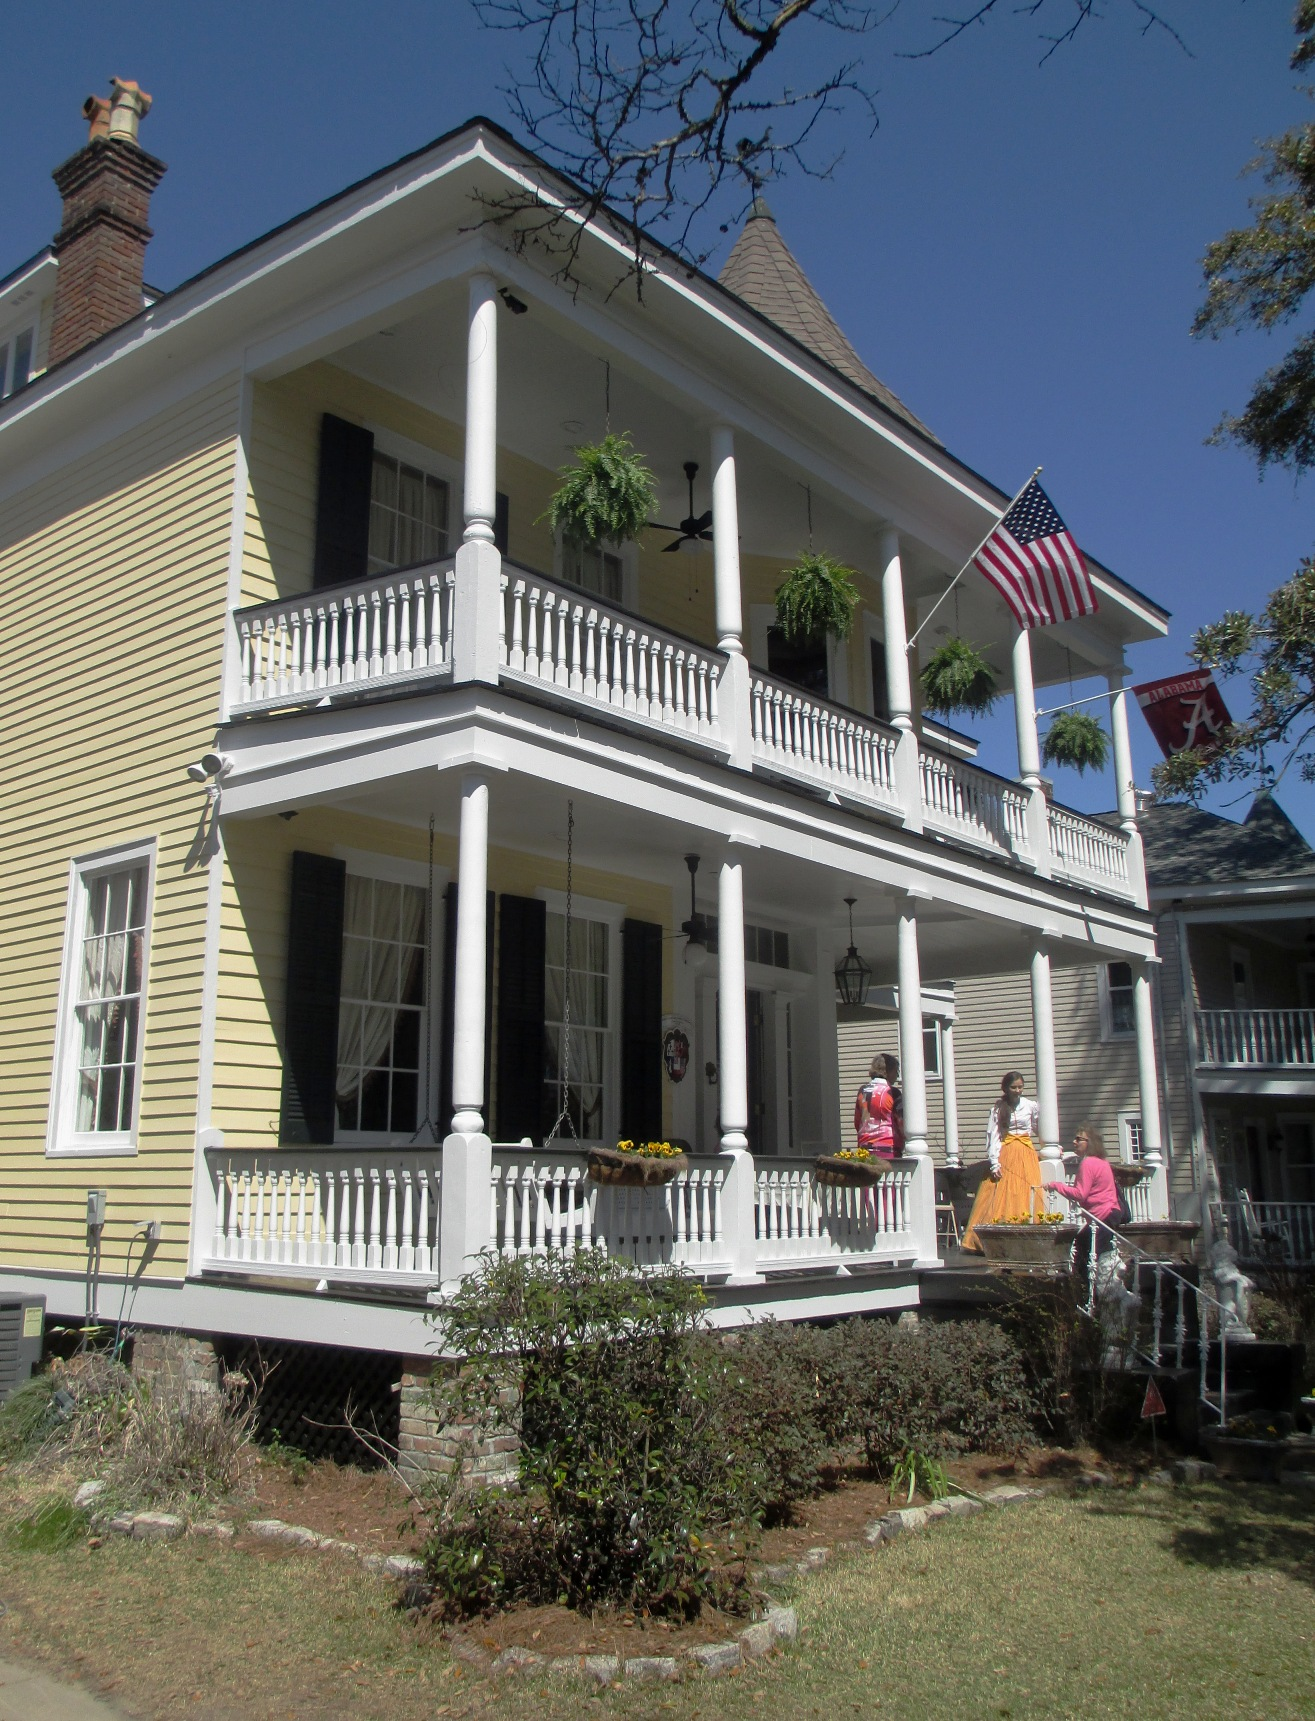 Mobile Alabama Home Tour 2014 Historic House Colors